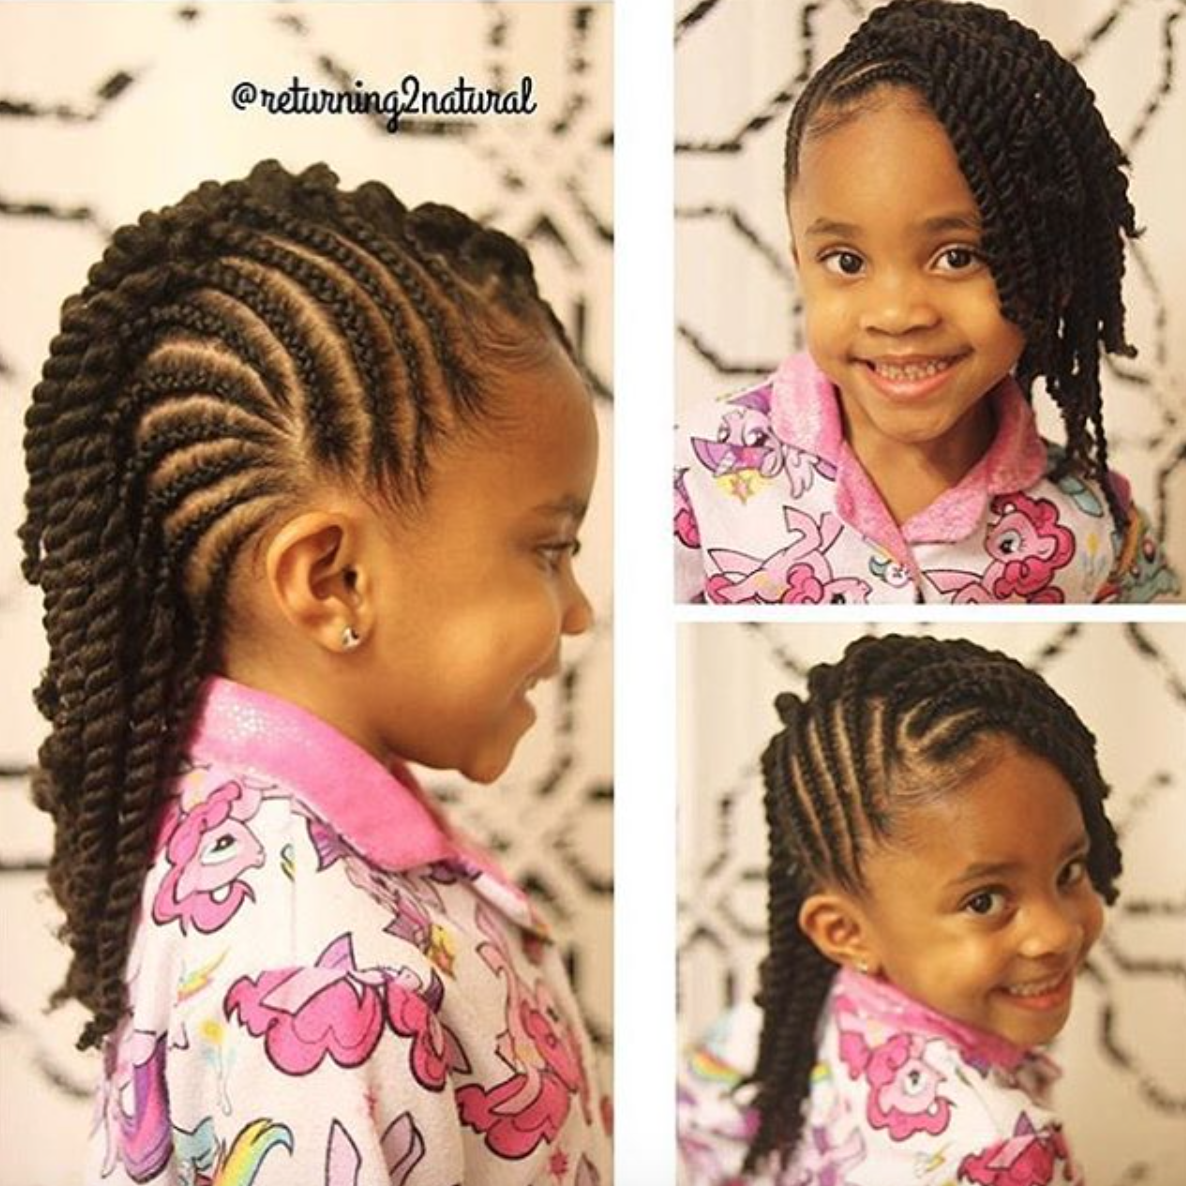 Kids Hairstyles Simple Adorable Returning2Natural  Httpcommunityblackhairinformatio